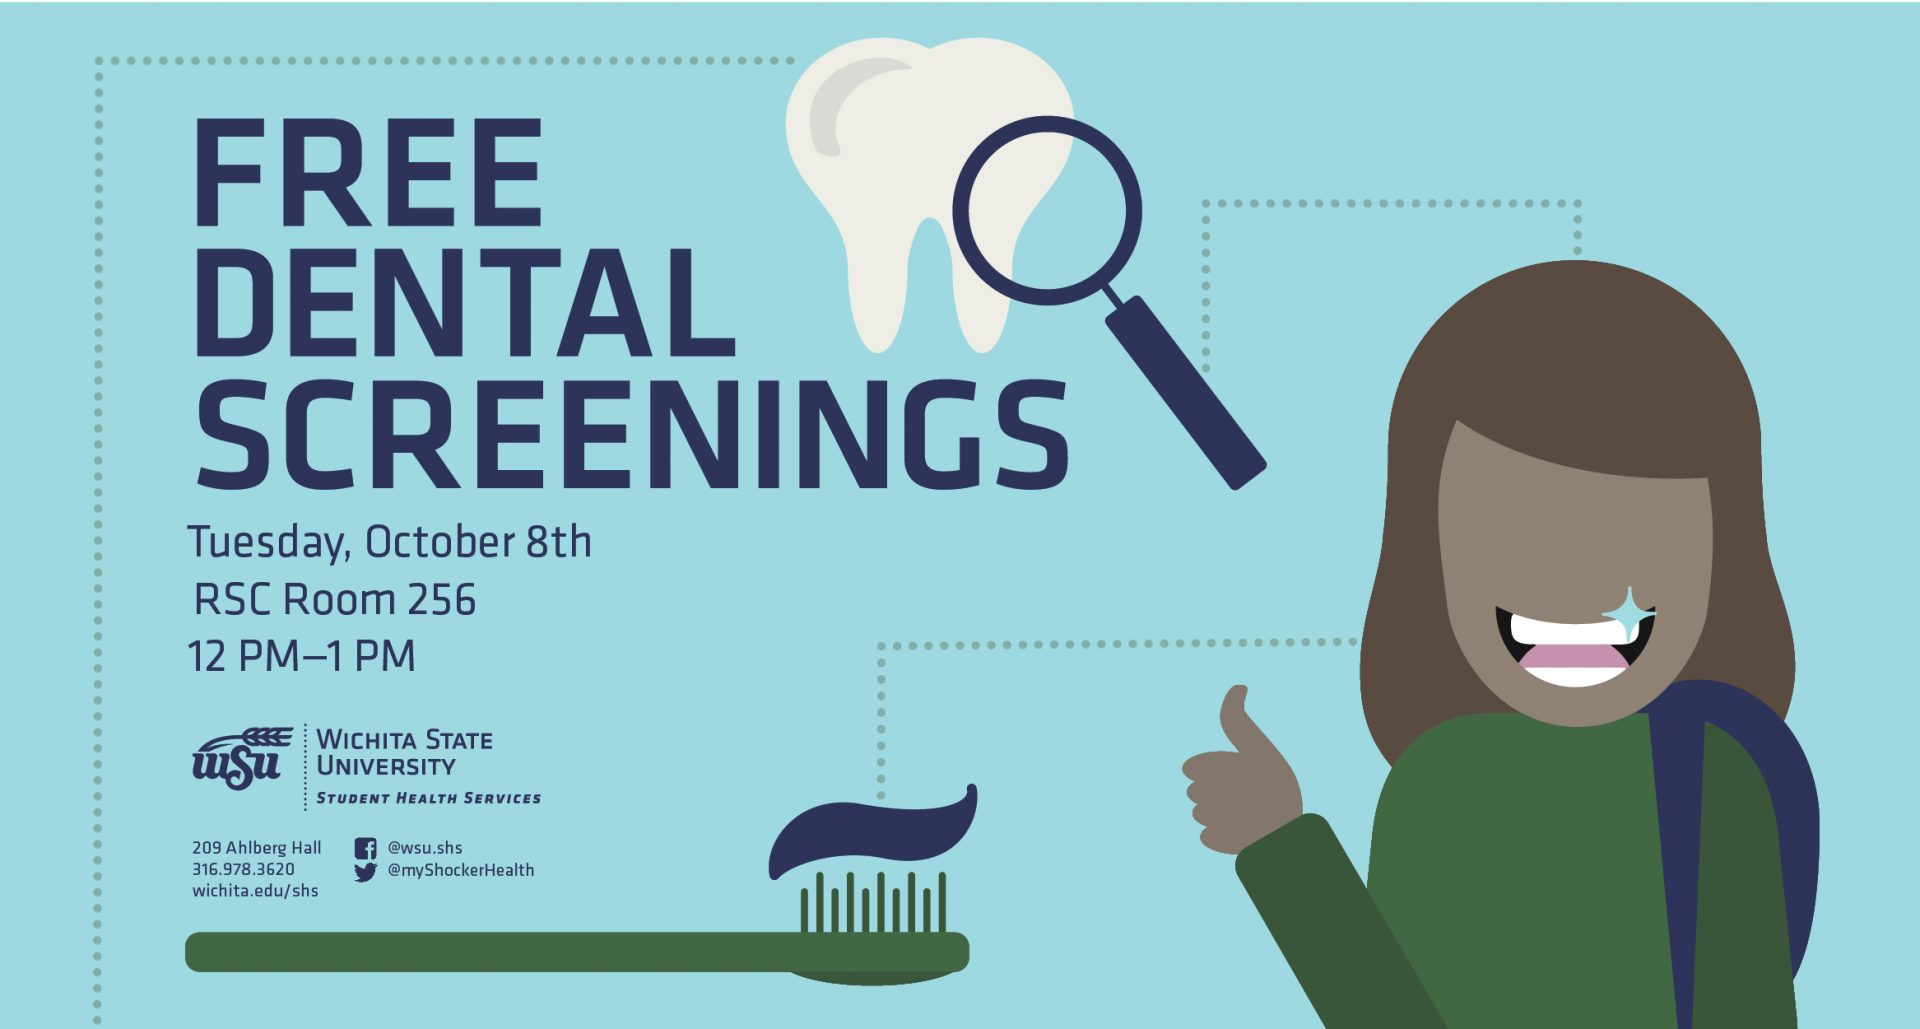 FREE Dental Screenings on Tuesday, October 8 from 12 to 1 p.m. at the RSC Room 256.